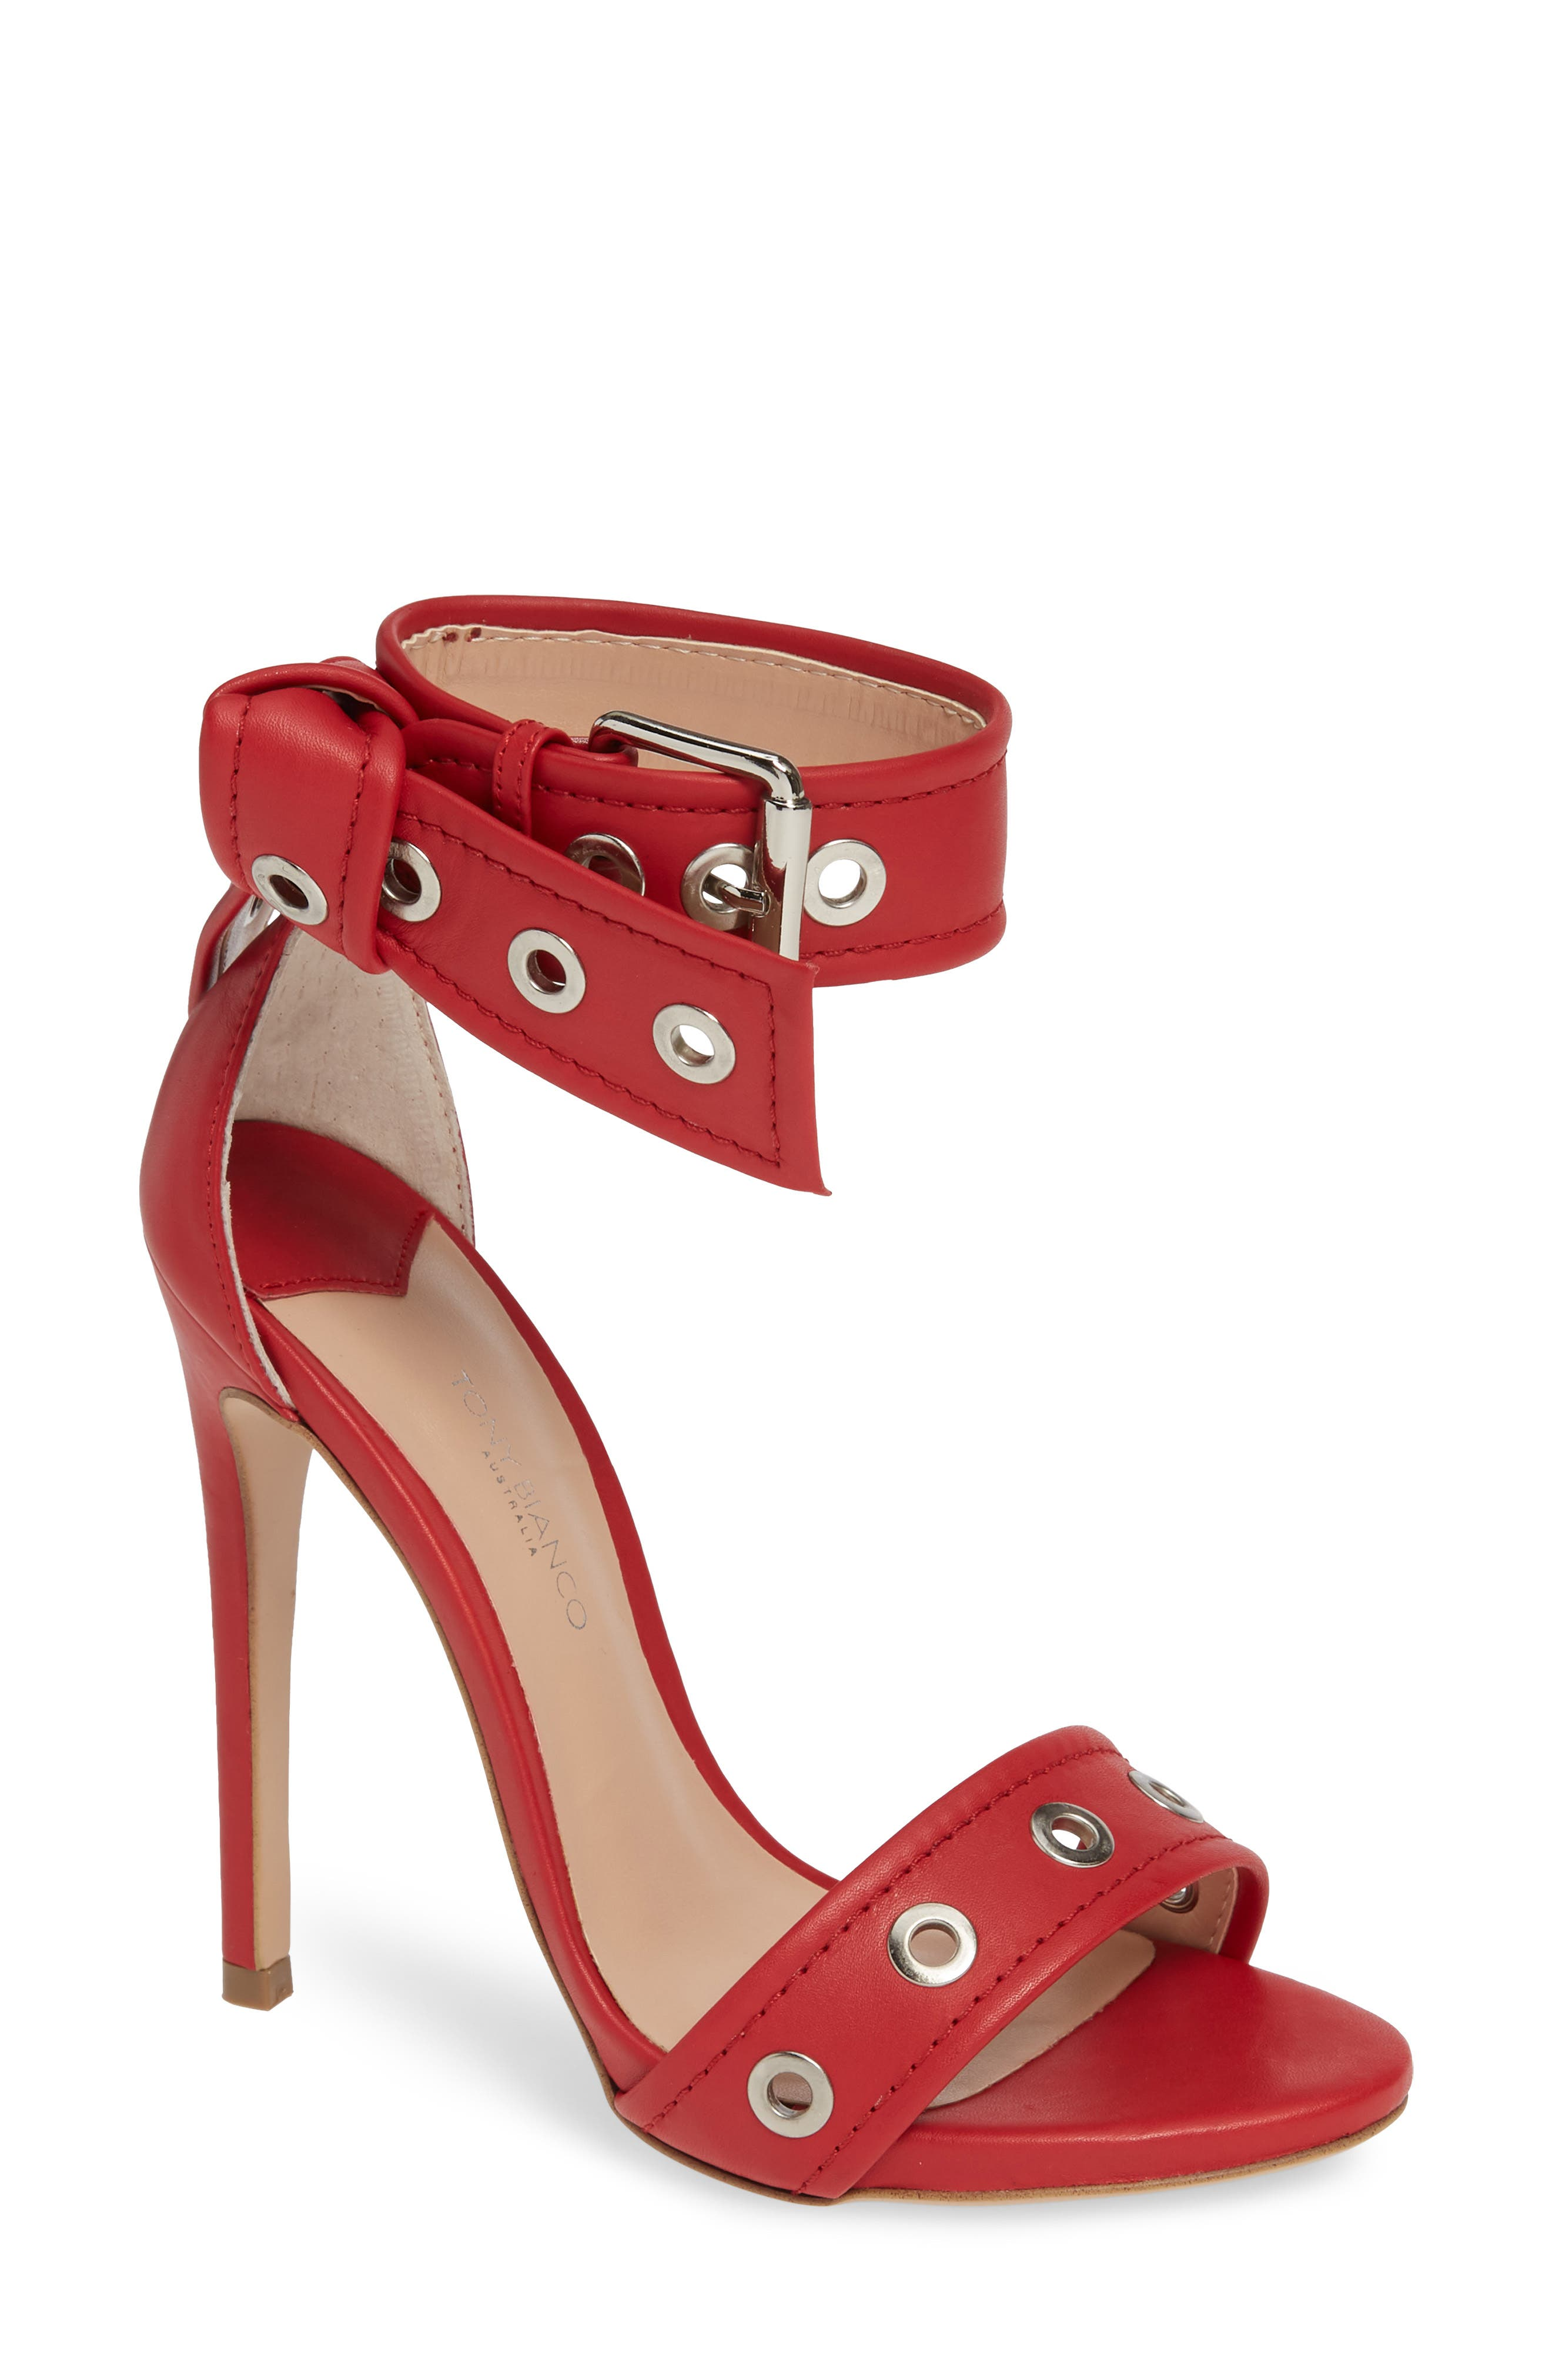 TONY BIANCO Acadia Sandal in Red